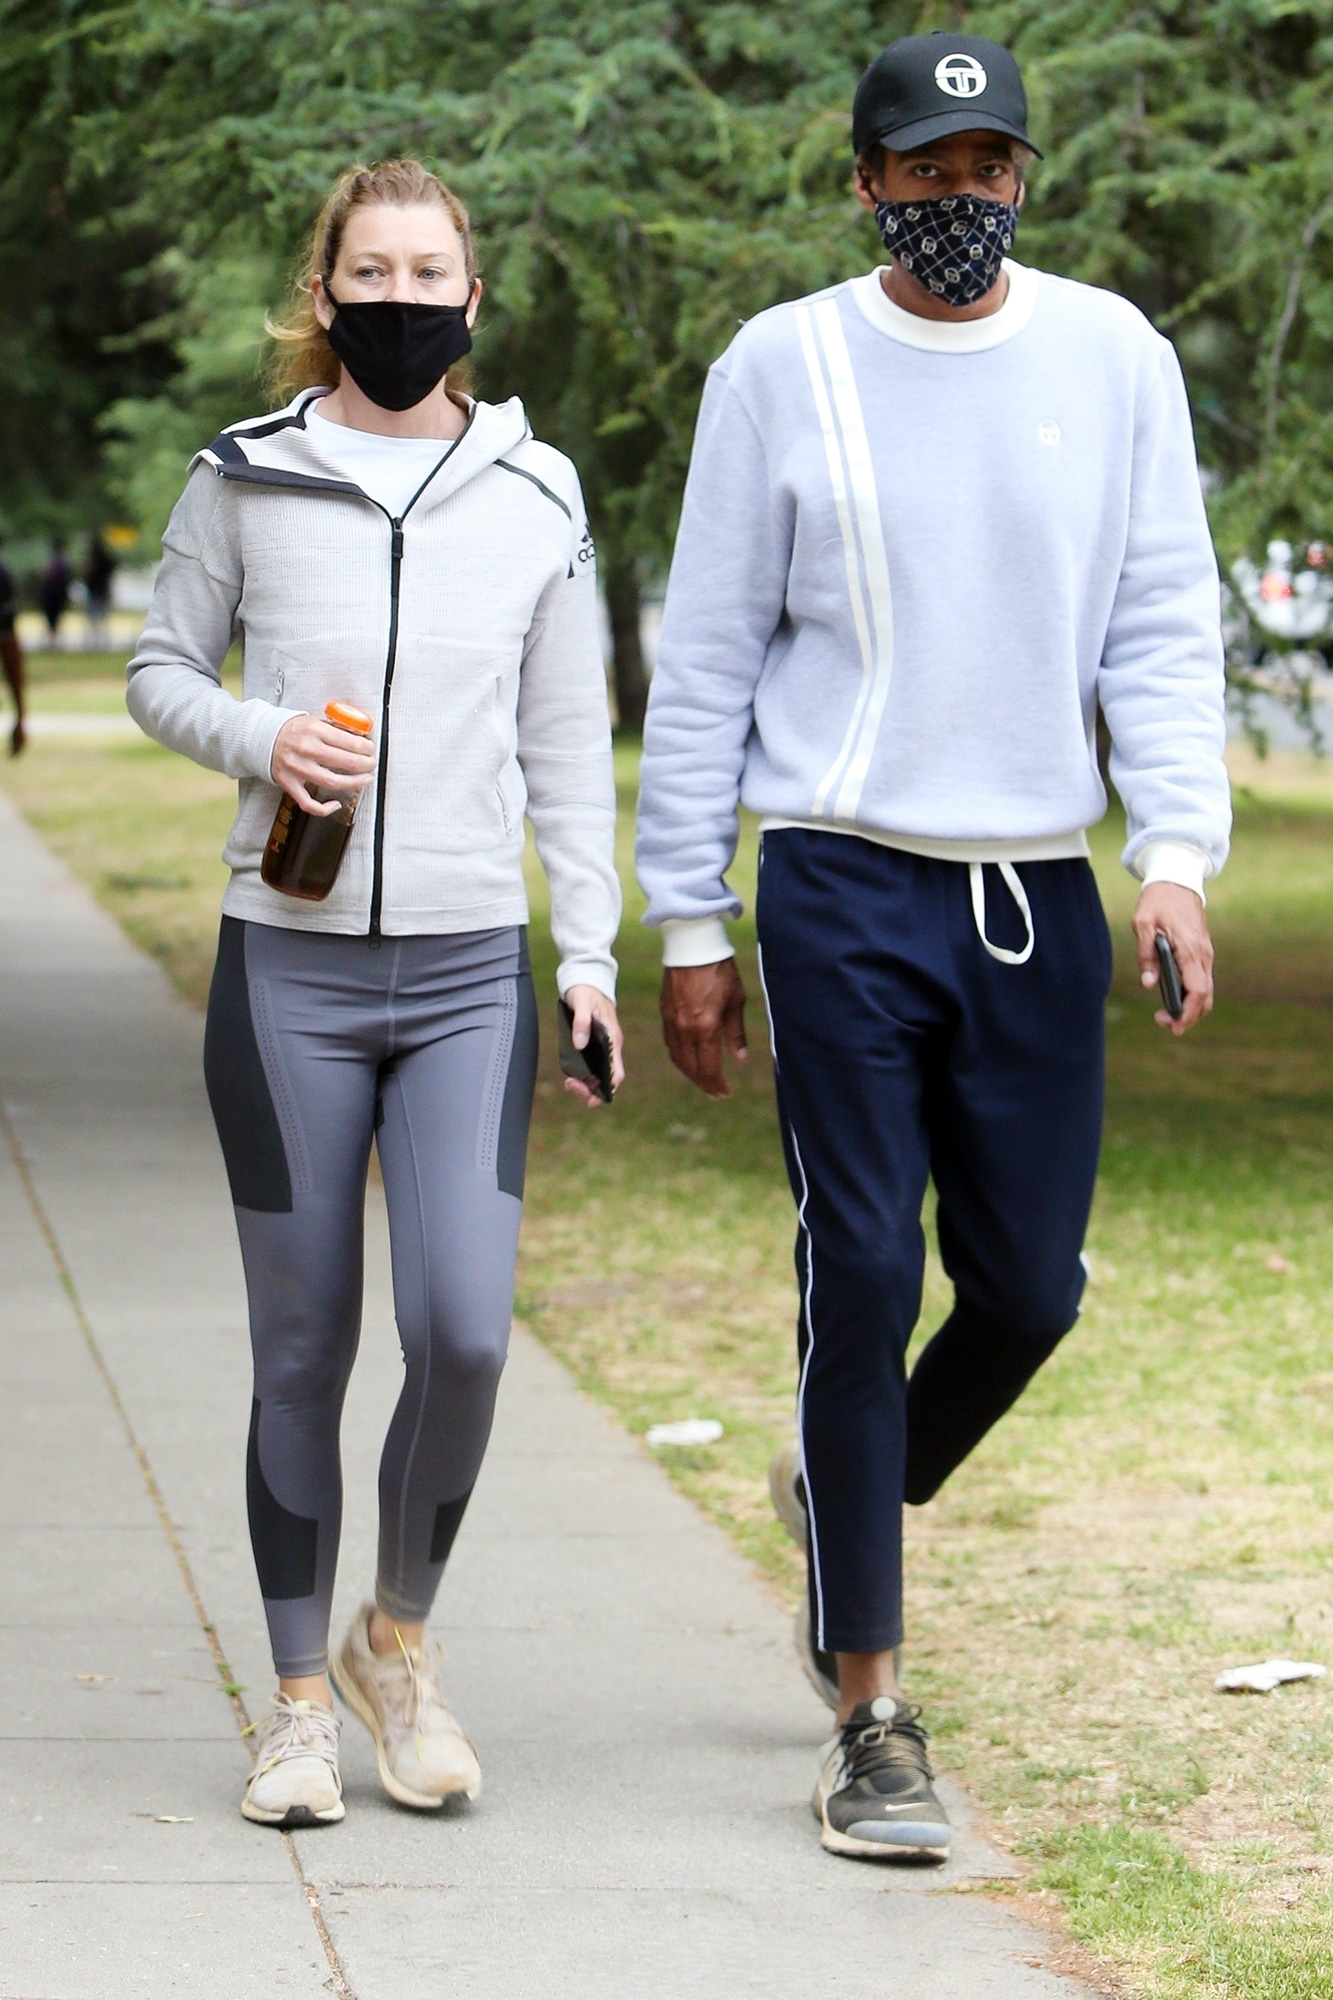 Ellen Pompeo worked up a sweat with her partner Chris Ivery